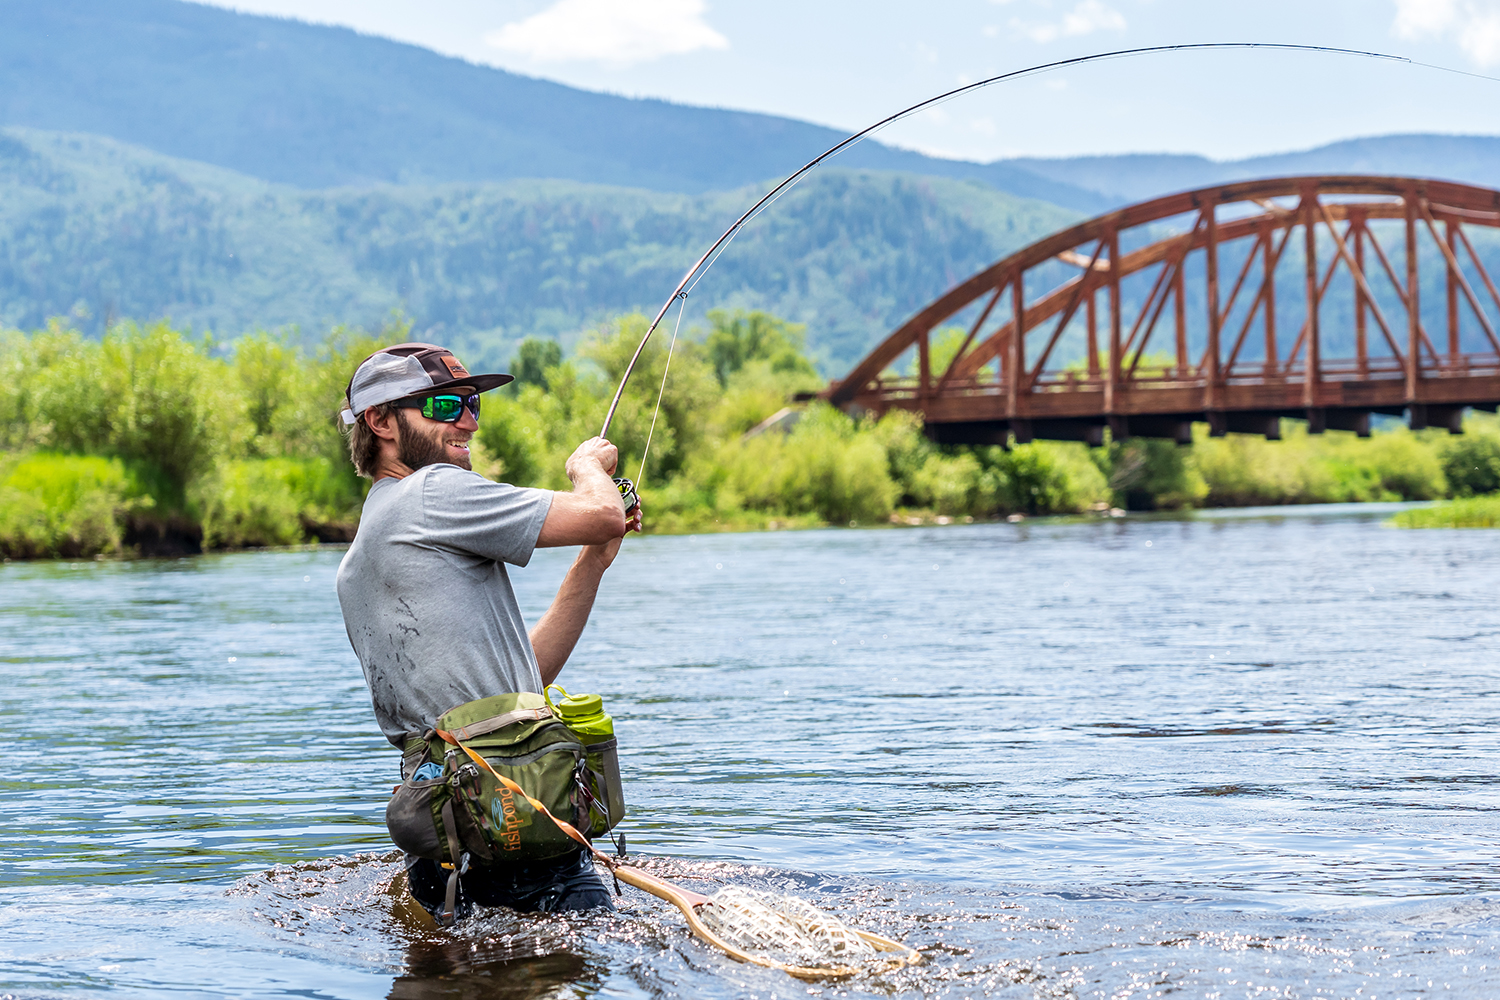 Steamboat is great for fishing in the summer